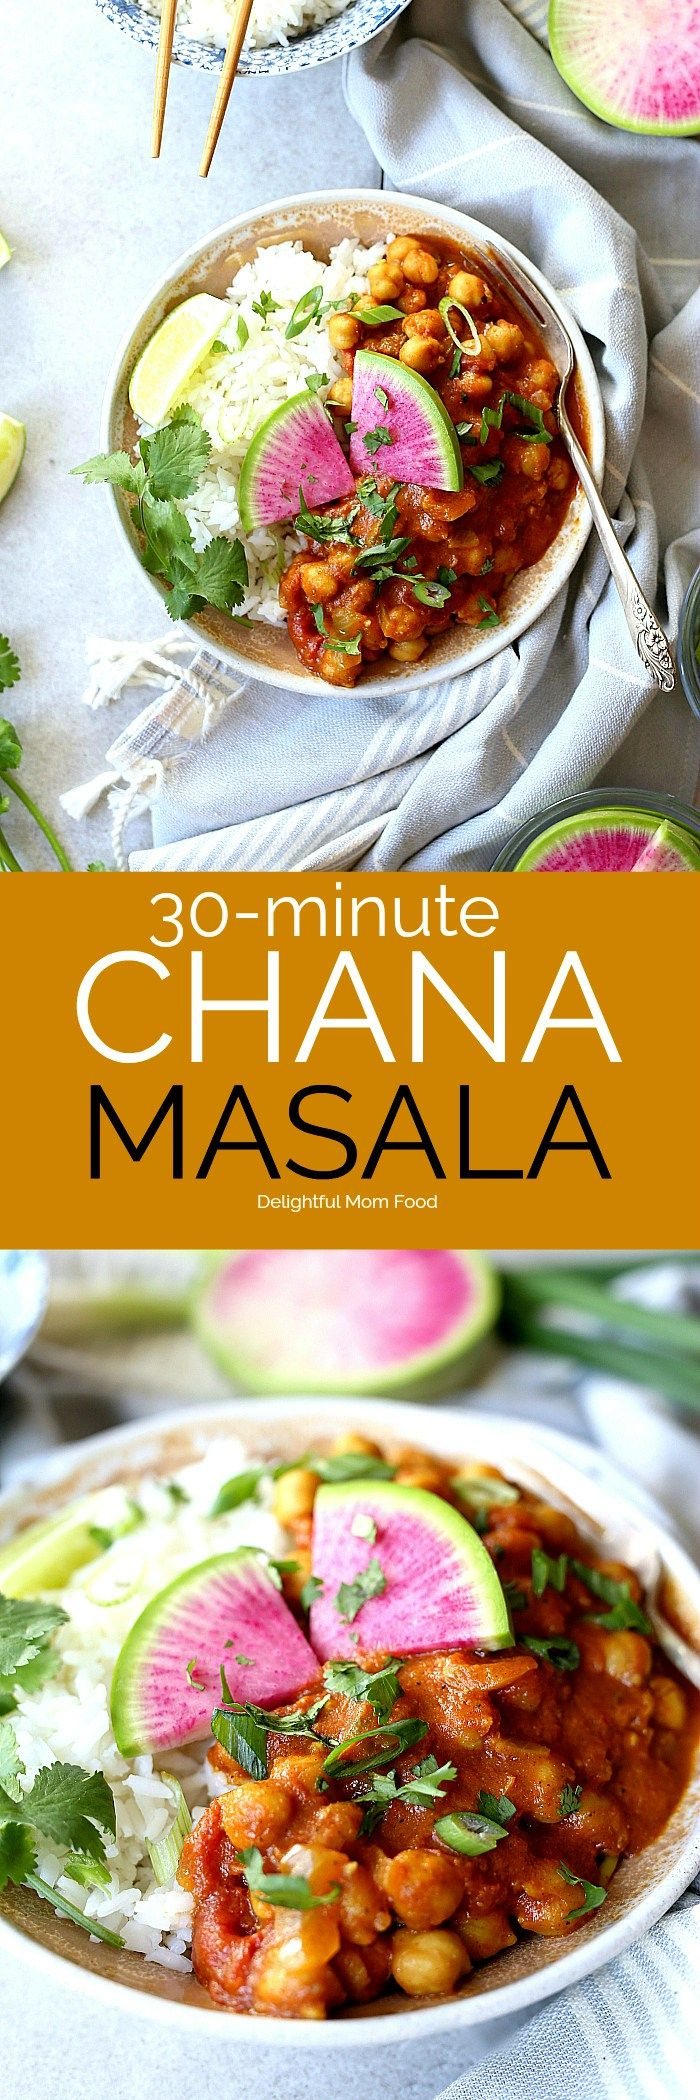 This 30-minute easy and healthy Indian Chana Masala recipe is made in 1-pot and simmered to delicious and nutritious perfection in coconut curry spices and a tomato base! Not only is it plump with chickpeas- it is vegan, gluten free and delicious tossed with rice or served with a side of roasted vegetables. #vegan #chana #masala #easy #healthy #glutenfree #chickpeas #recipe   Delightfulmomfood.com